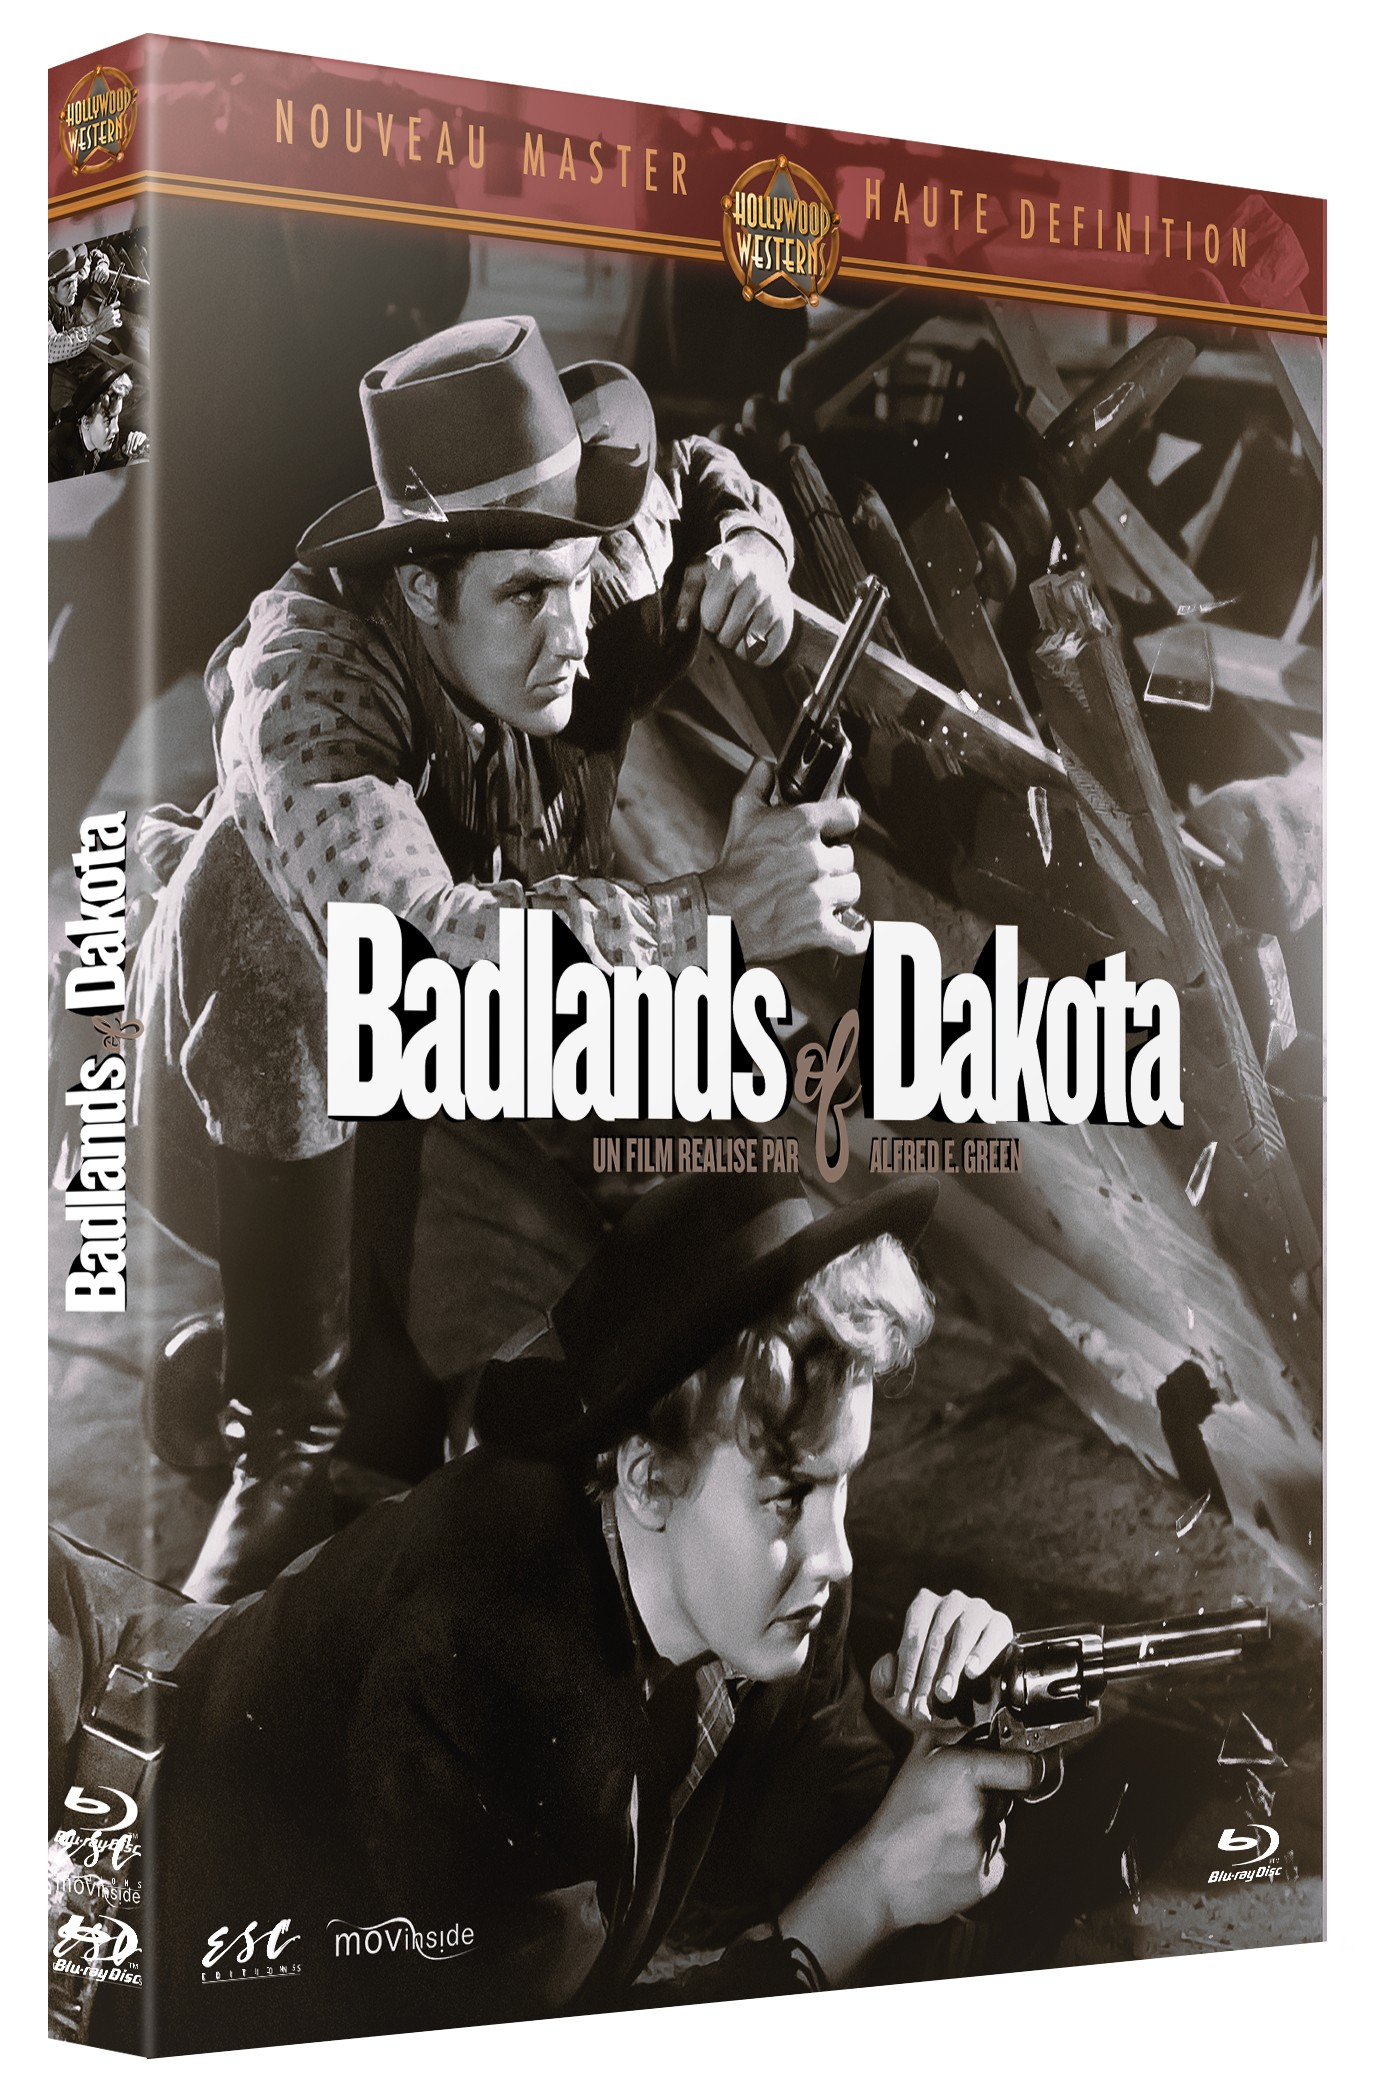 BADLANDS OF DAKOTA - BRD